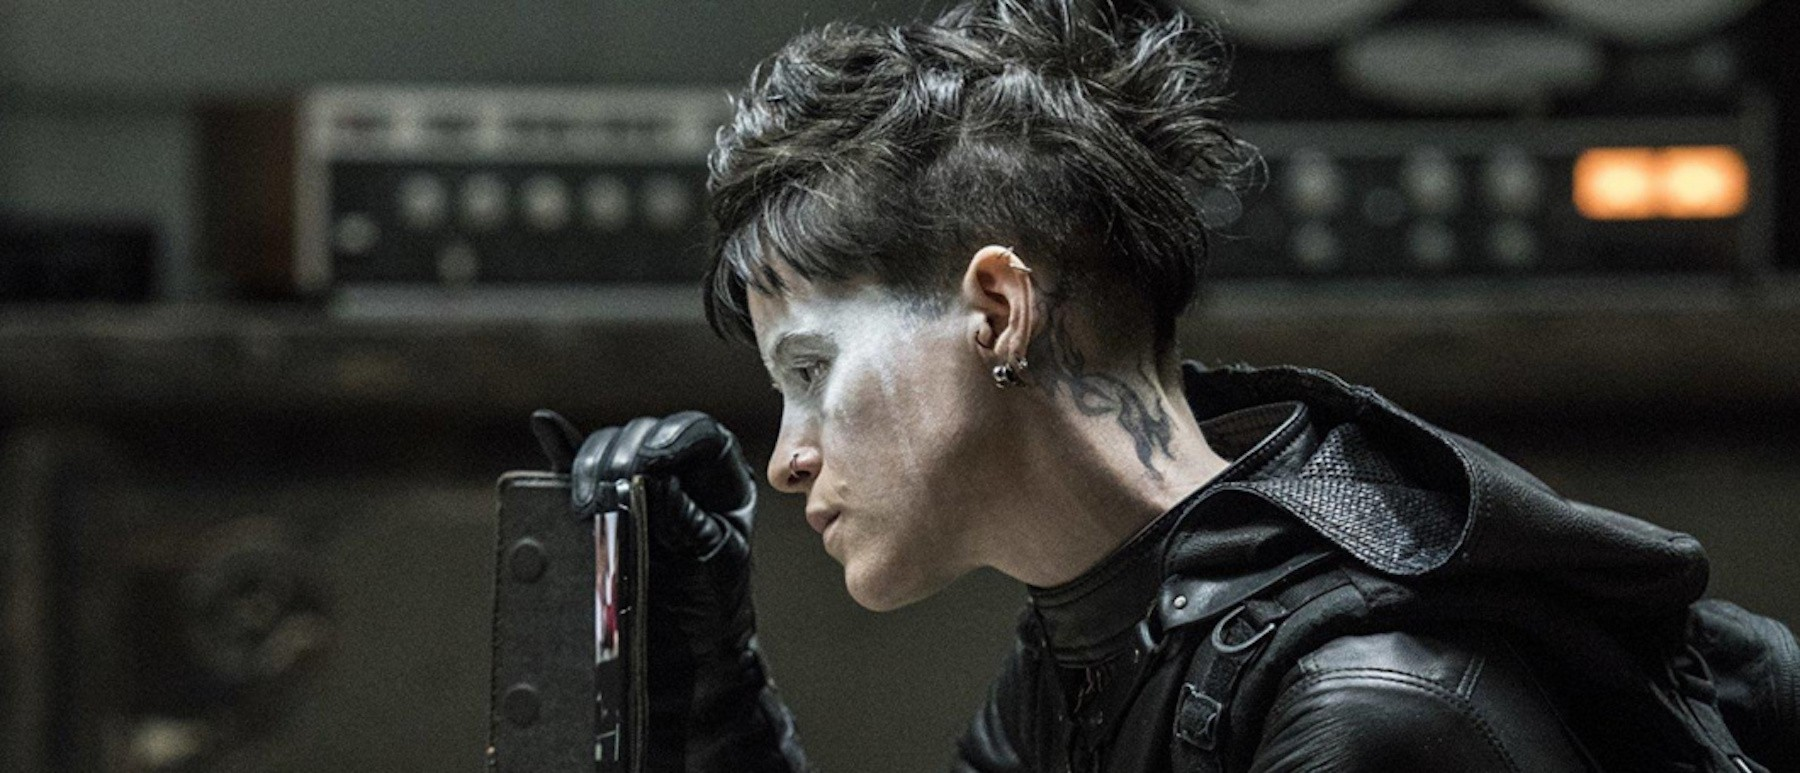 The Girl in the Spider s Web - moonrocketfilms cinema